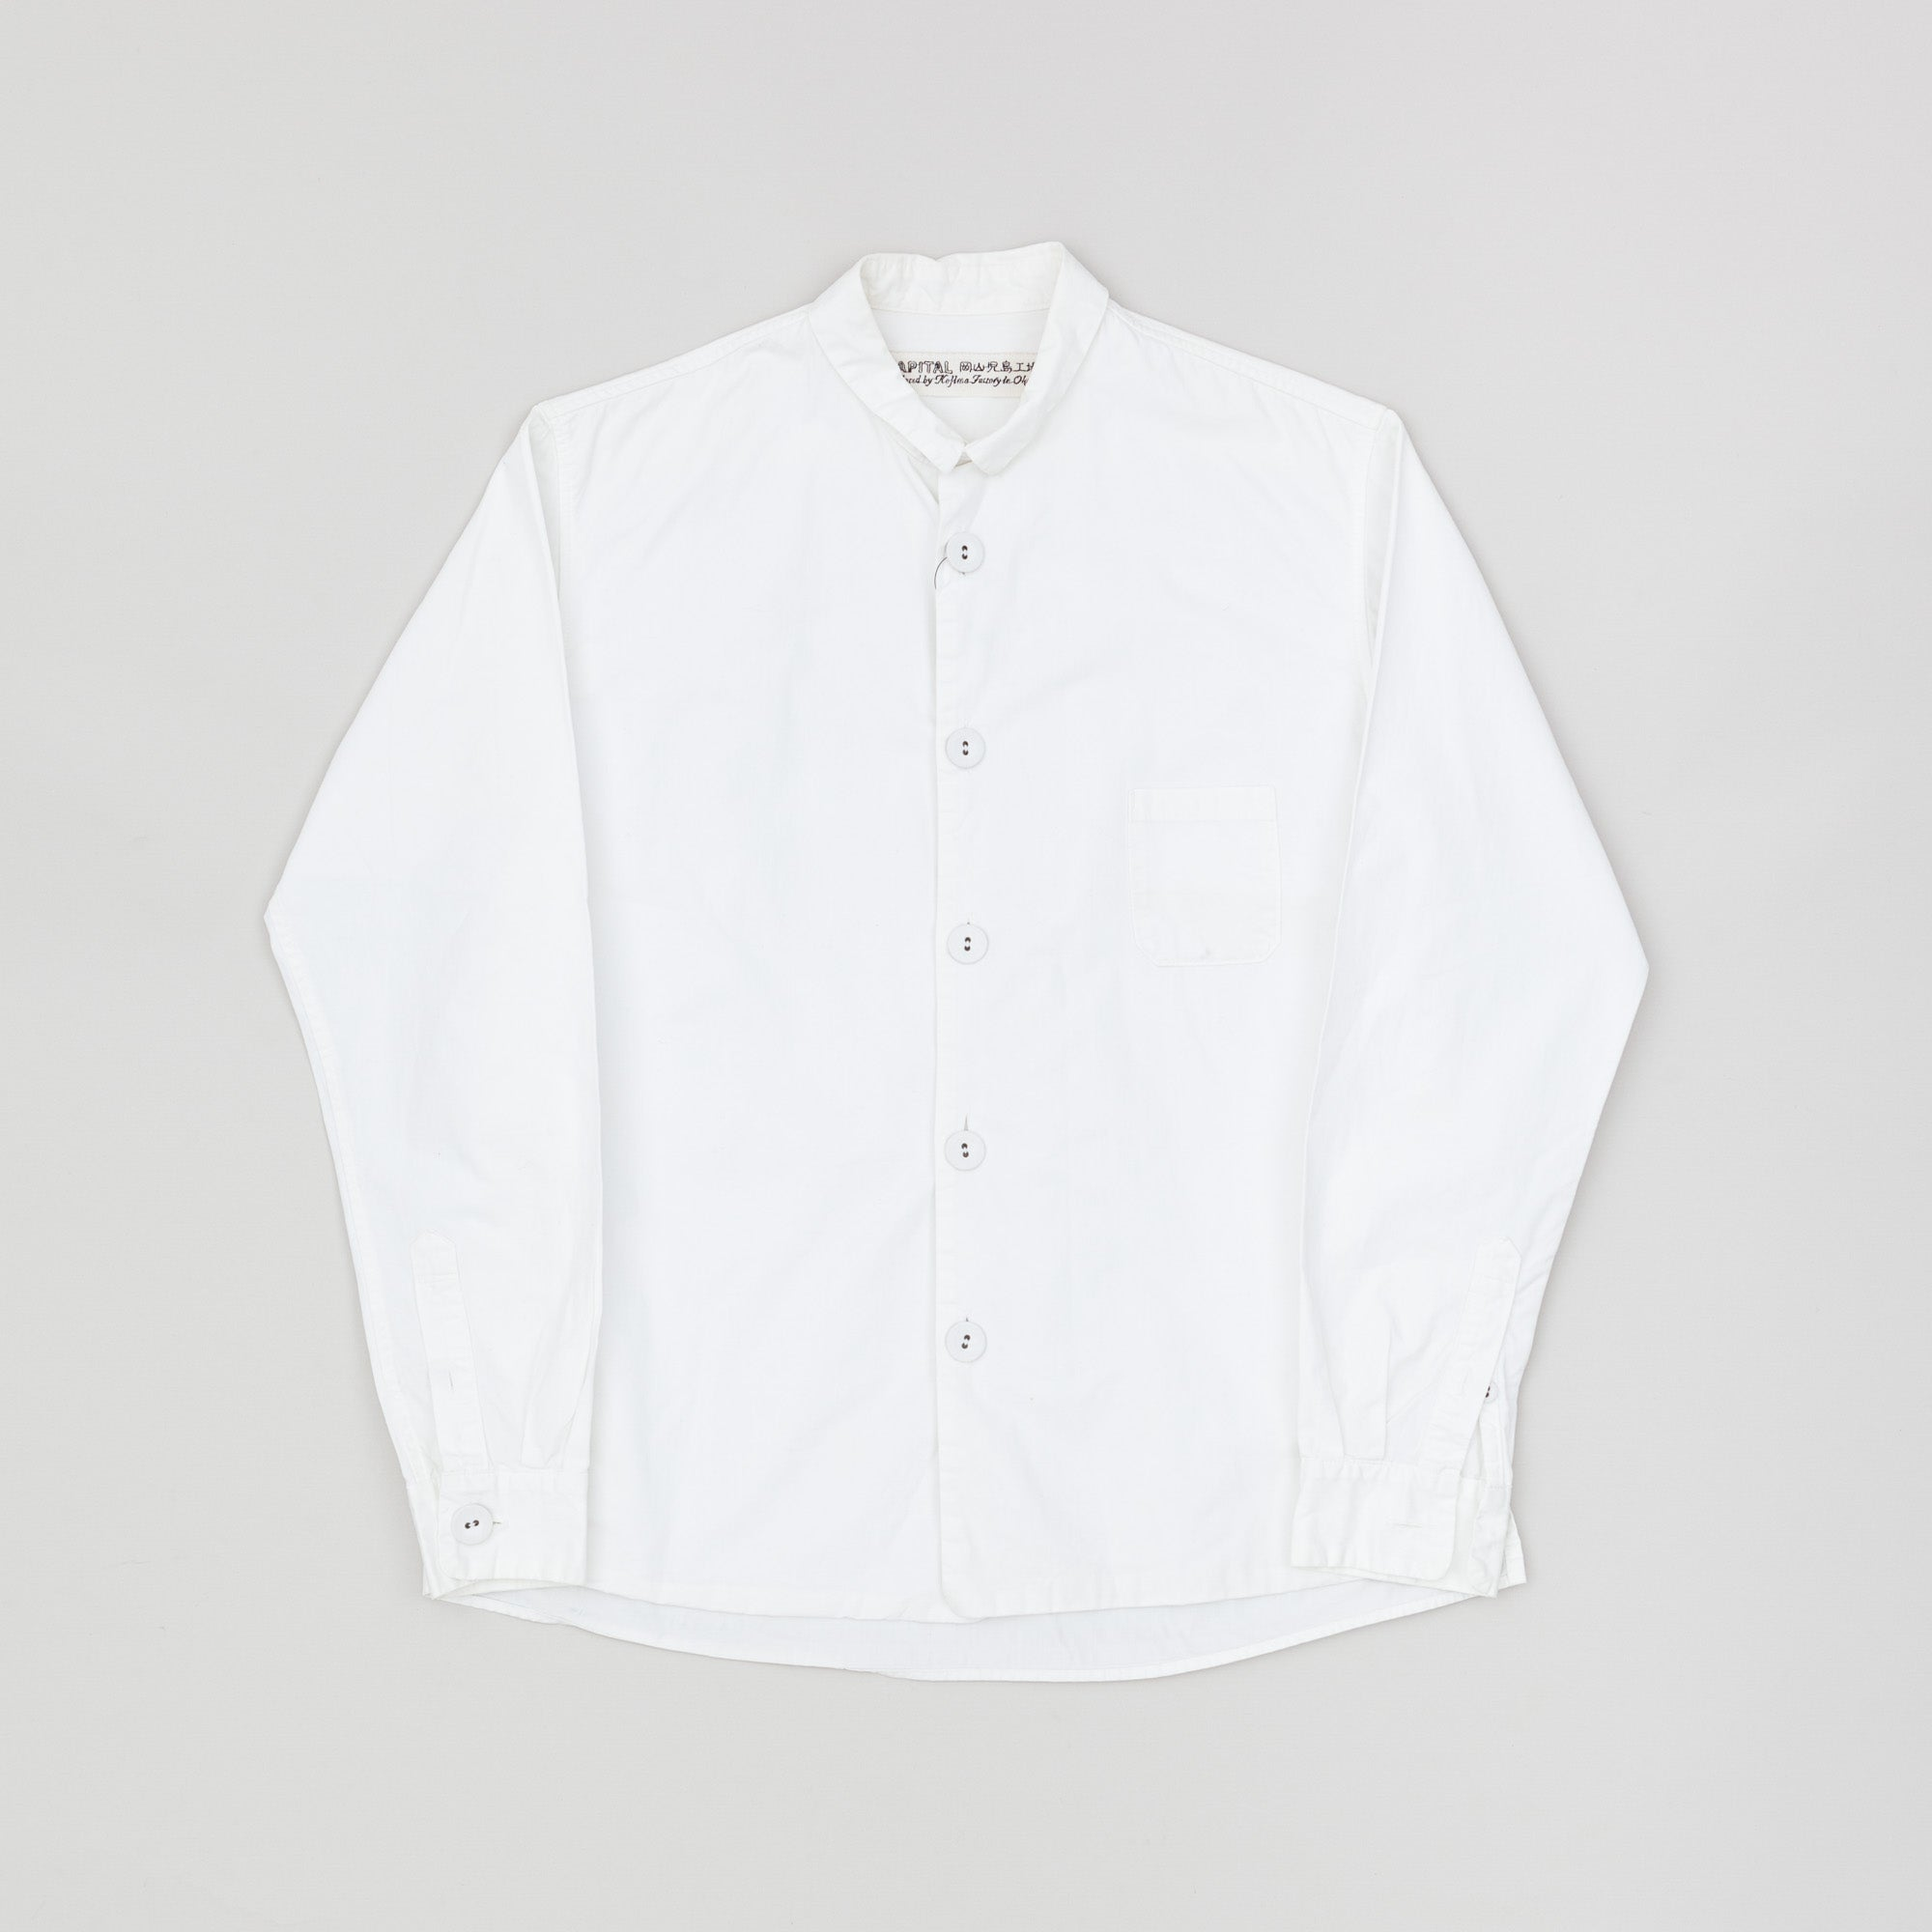 Kapital Plain Cotton Shirt